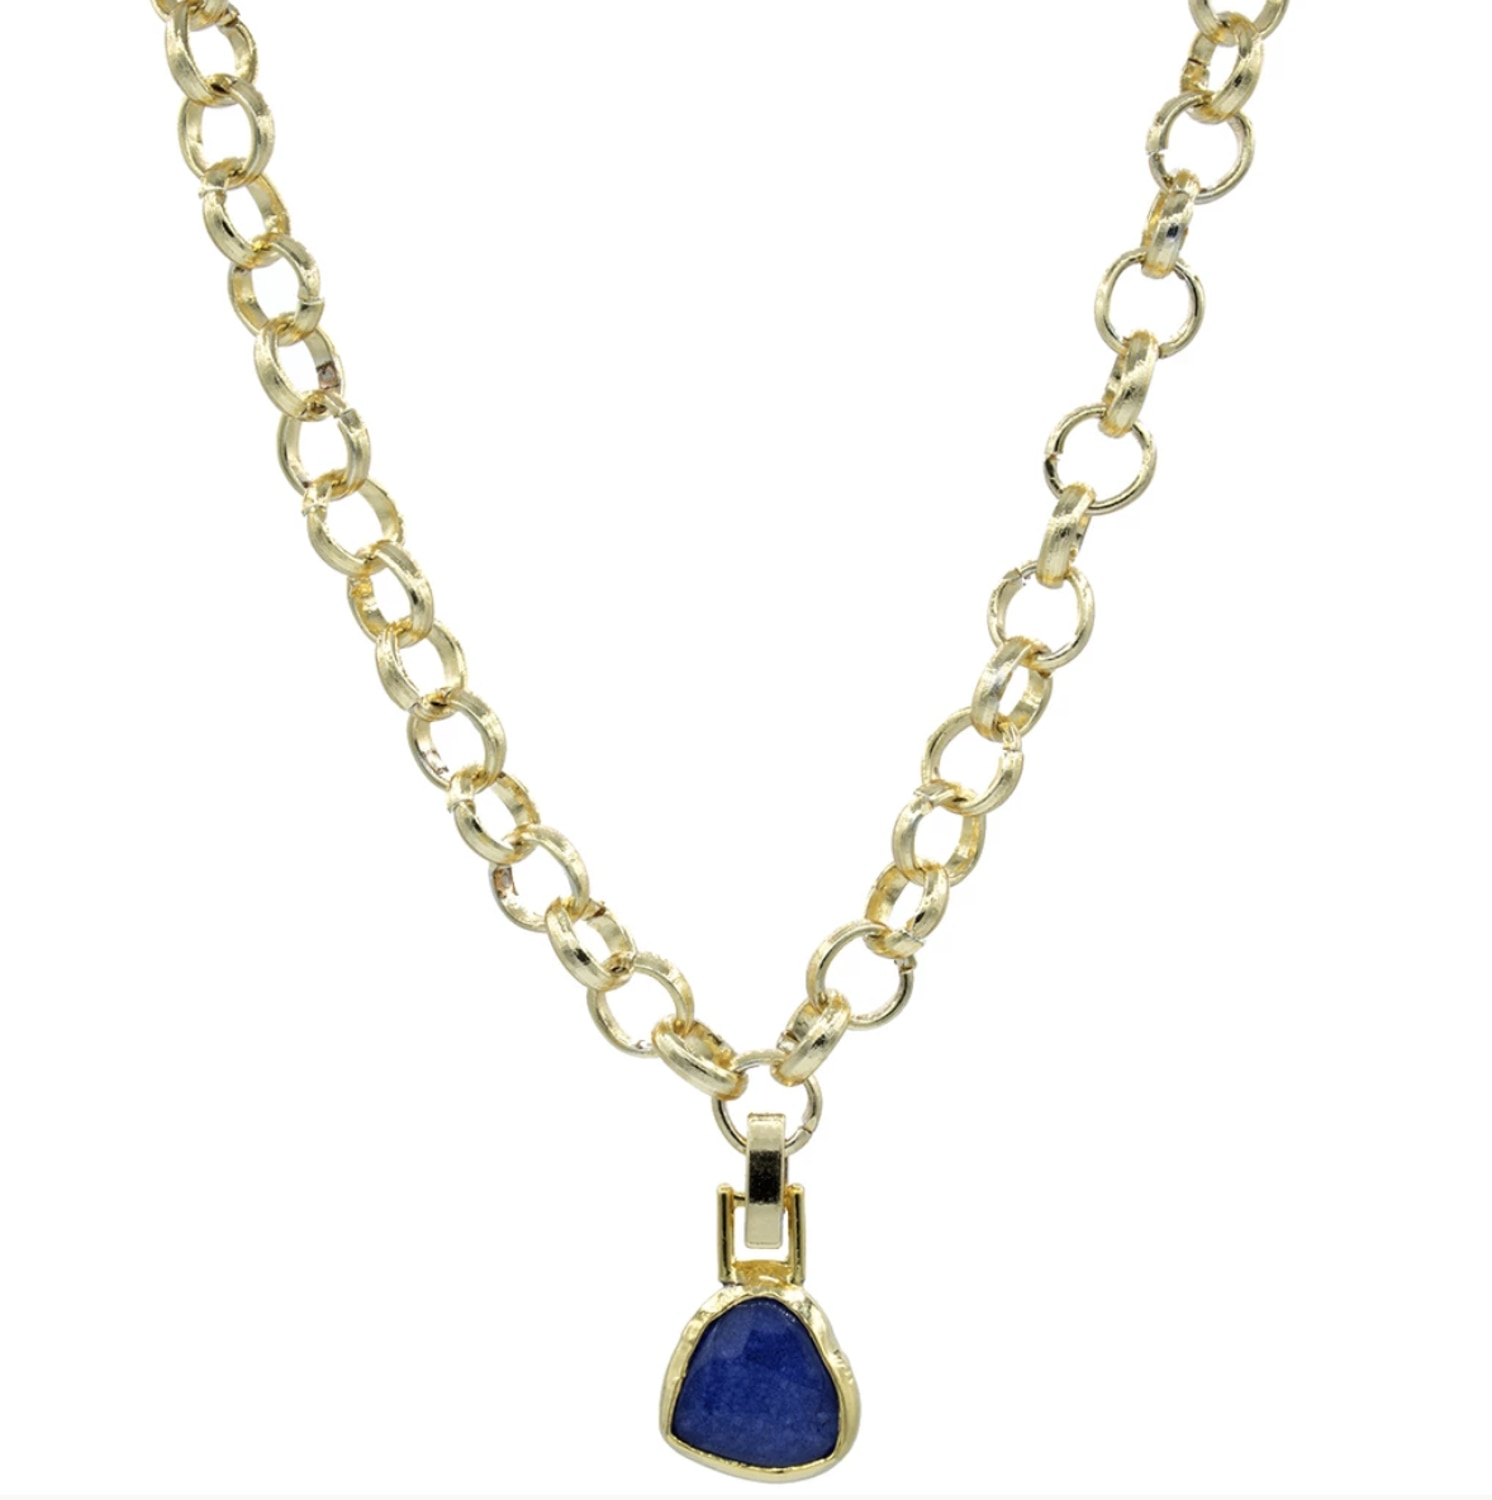 GULCE DERELI, NAVY BLUE NATURAL STONE NECKLACE, CHAIN NECKLACE, GIFT BOX, GOLD/SILVER PLATED